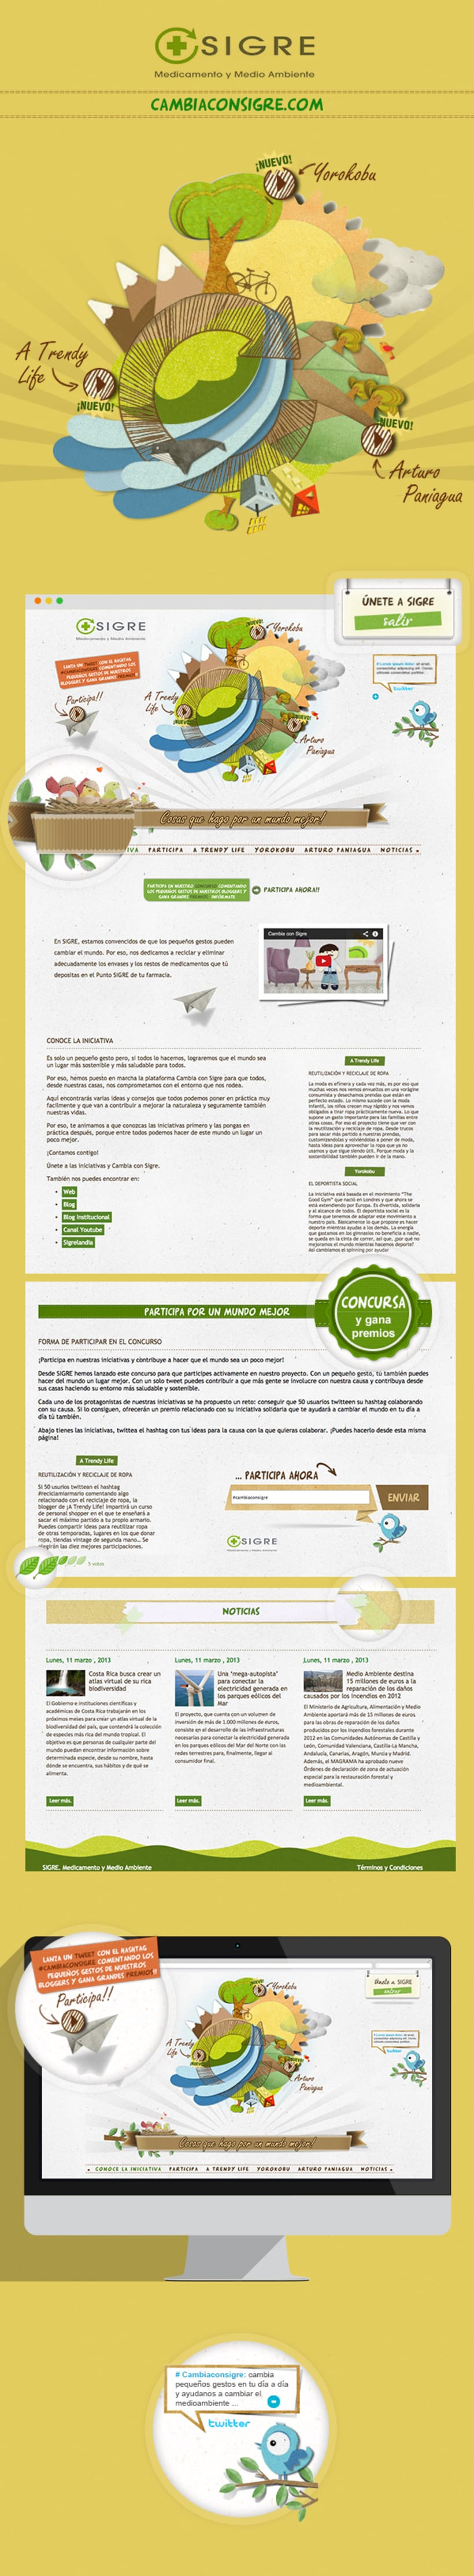 Recycle website design | Cambia con SIGRE  0